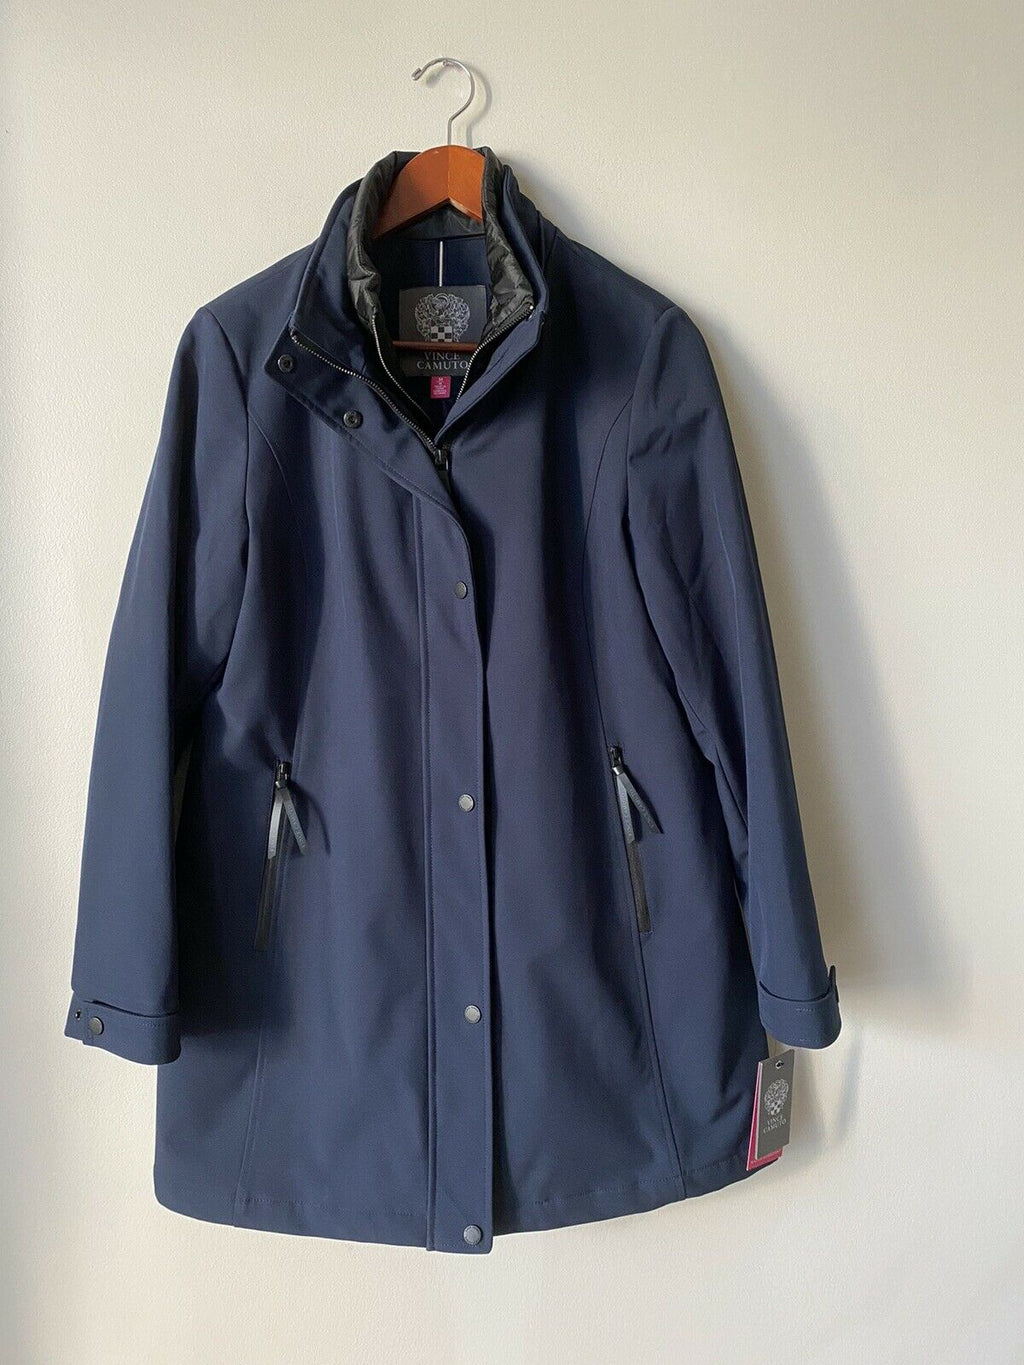 Vince Camuto Womens Size Medium Navy Blue Jacket Water Resistant Zip Up Coat NWT